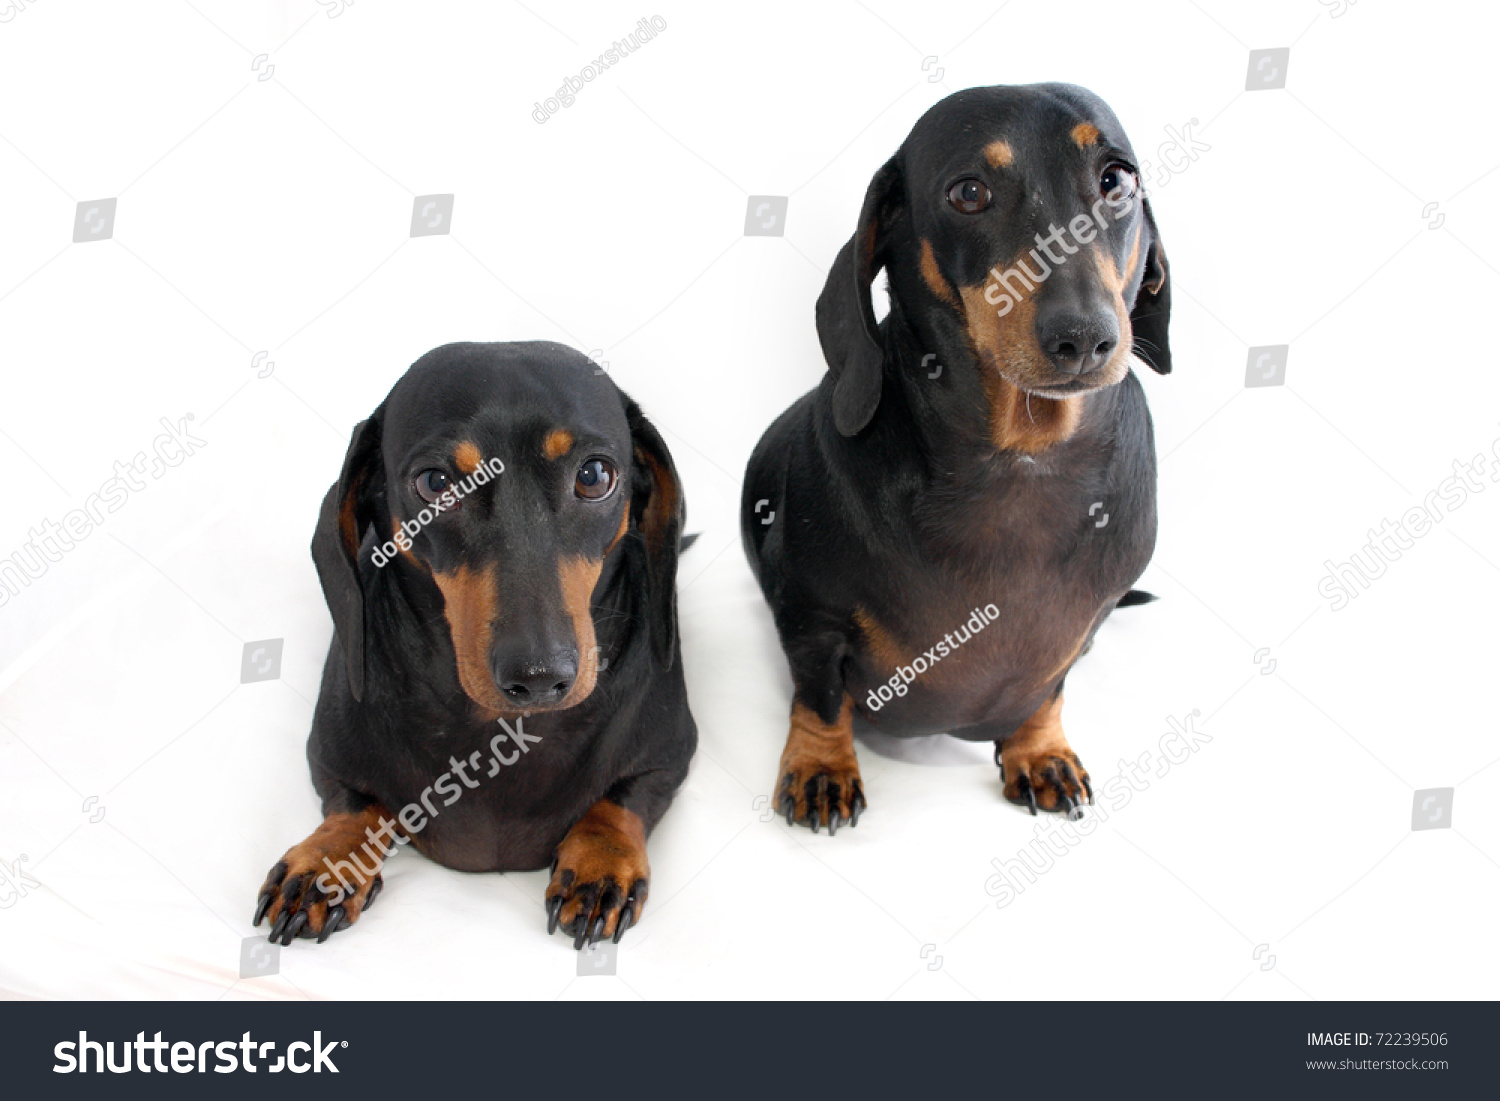 Pictures Of Black Dachshund Dogs